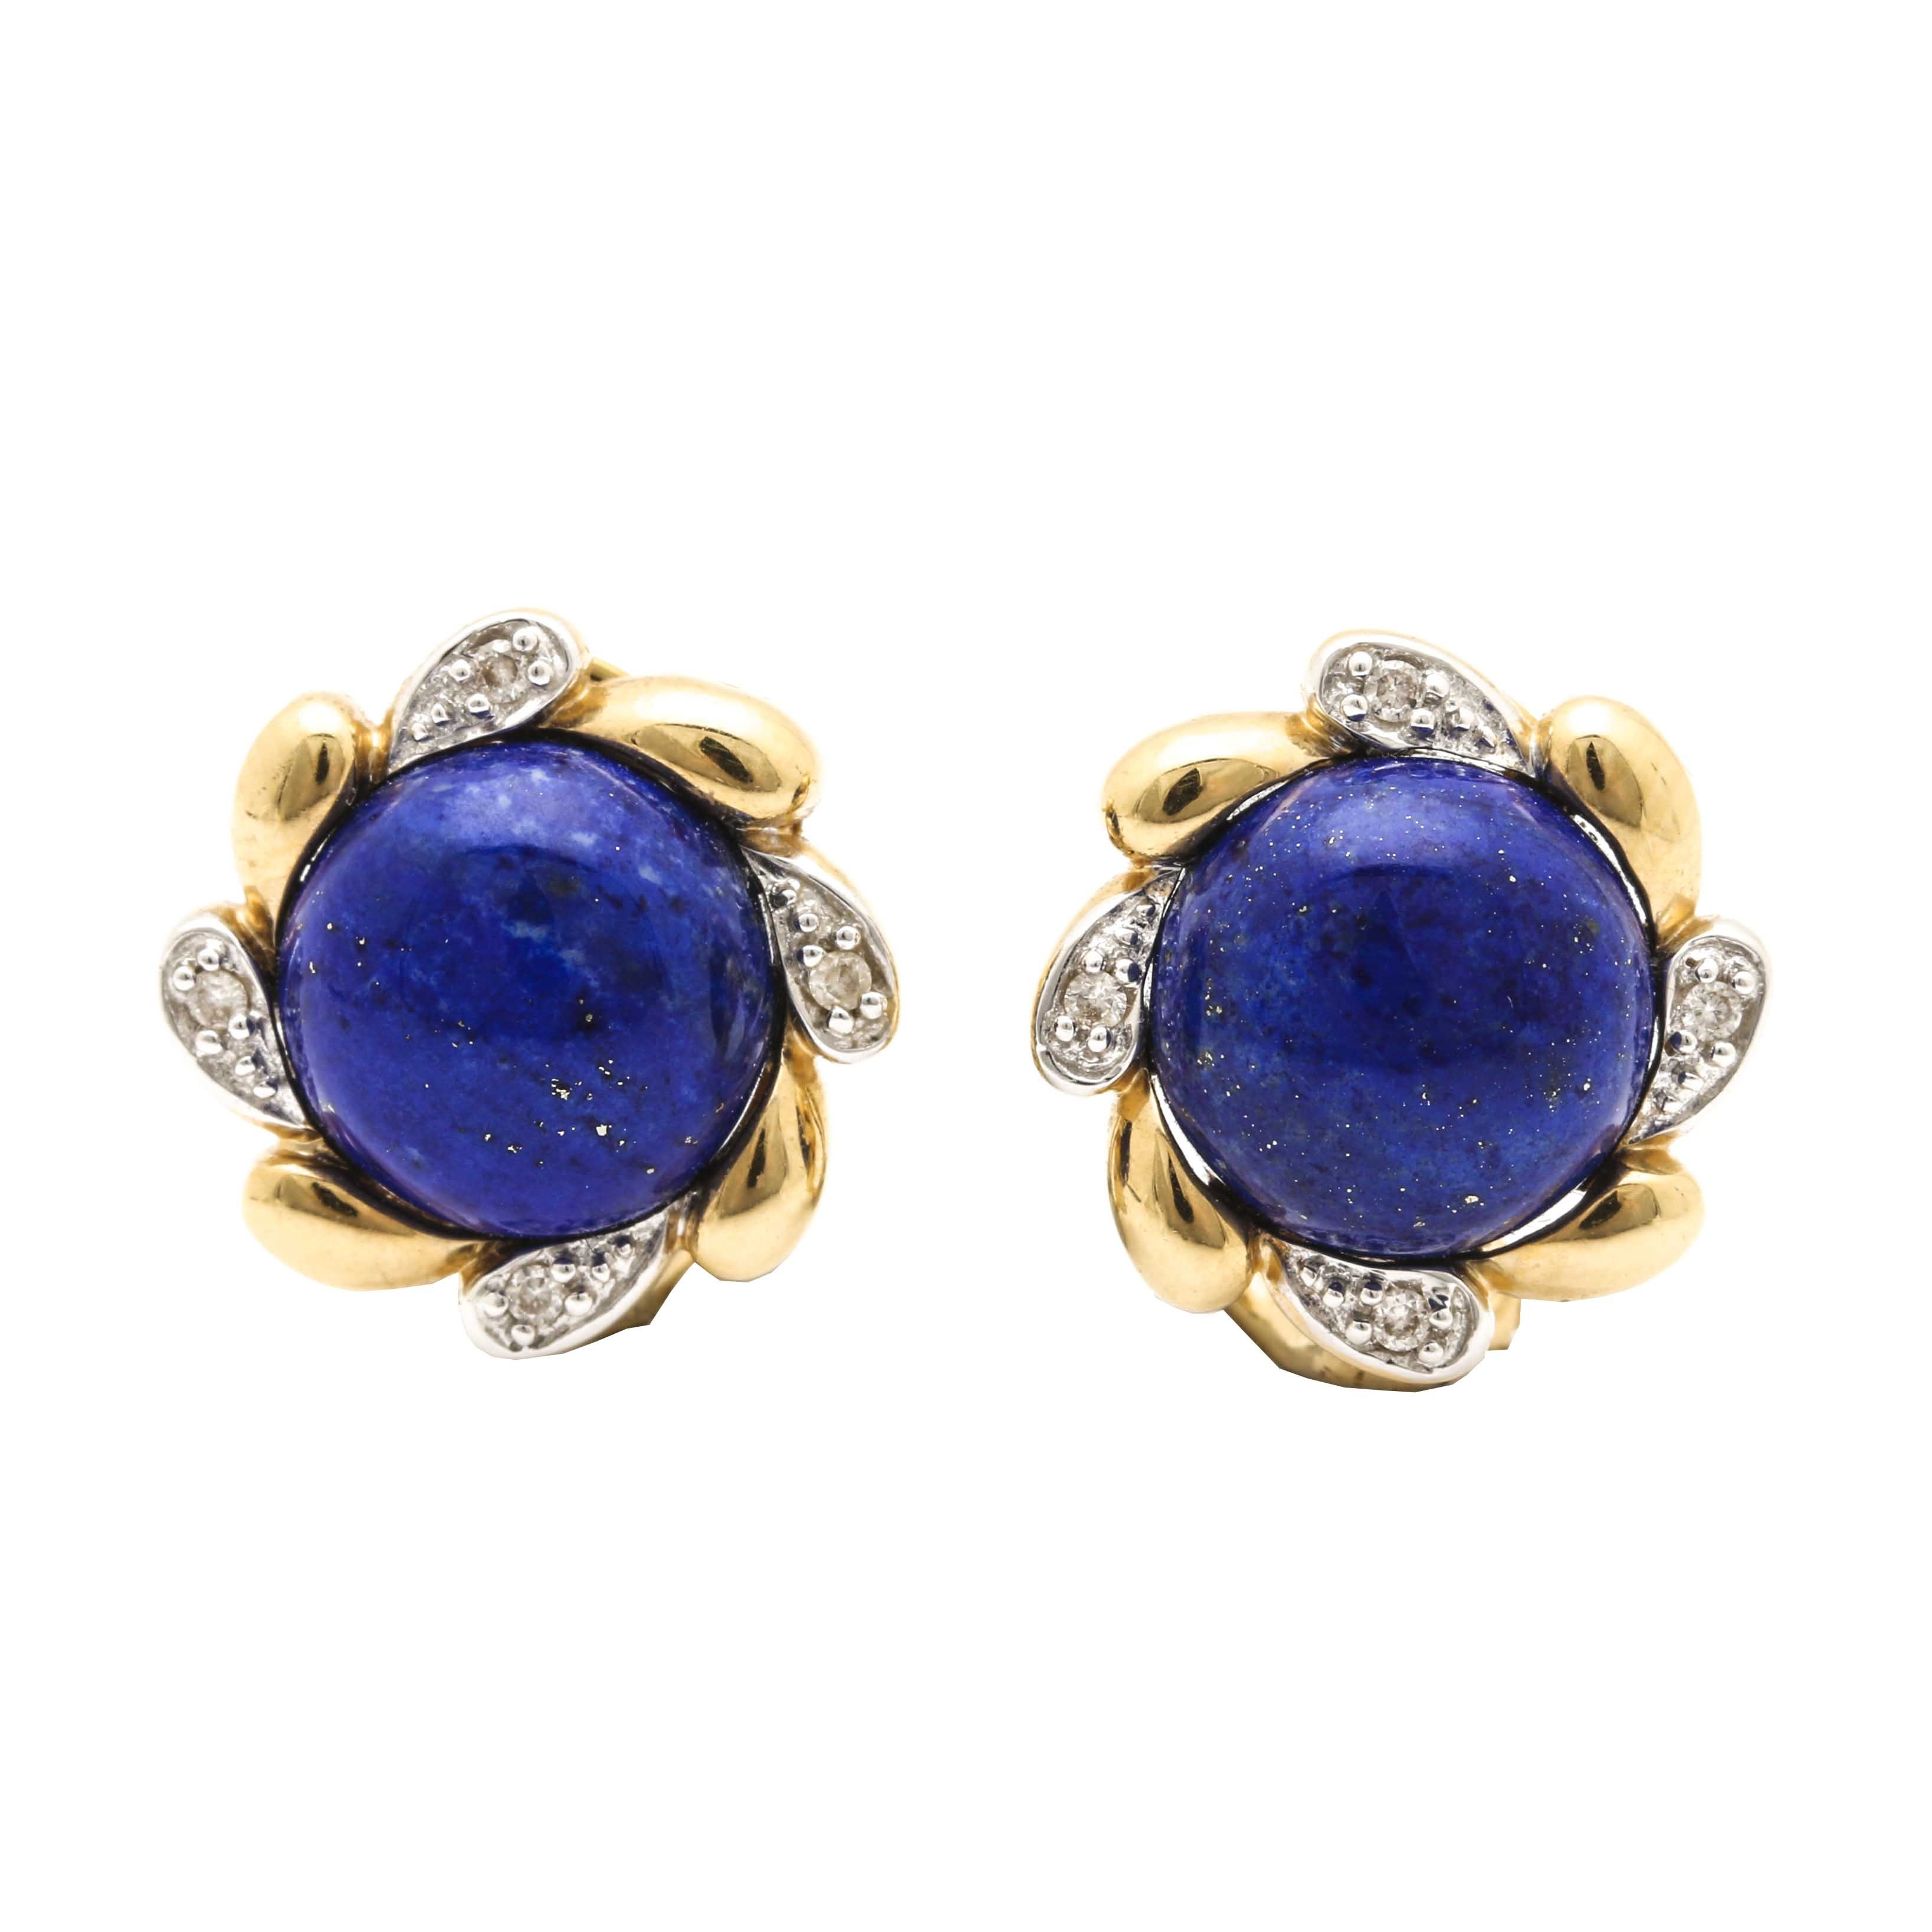 Le Vian 14K Yellow Gold Lapis Lazuli and Diamond Earrings